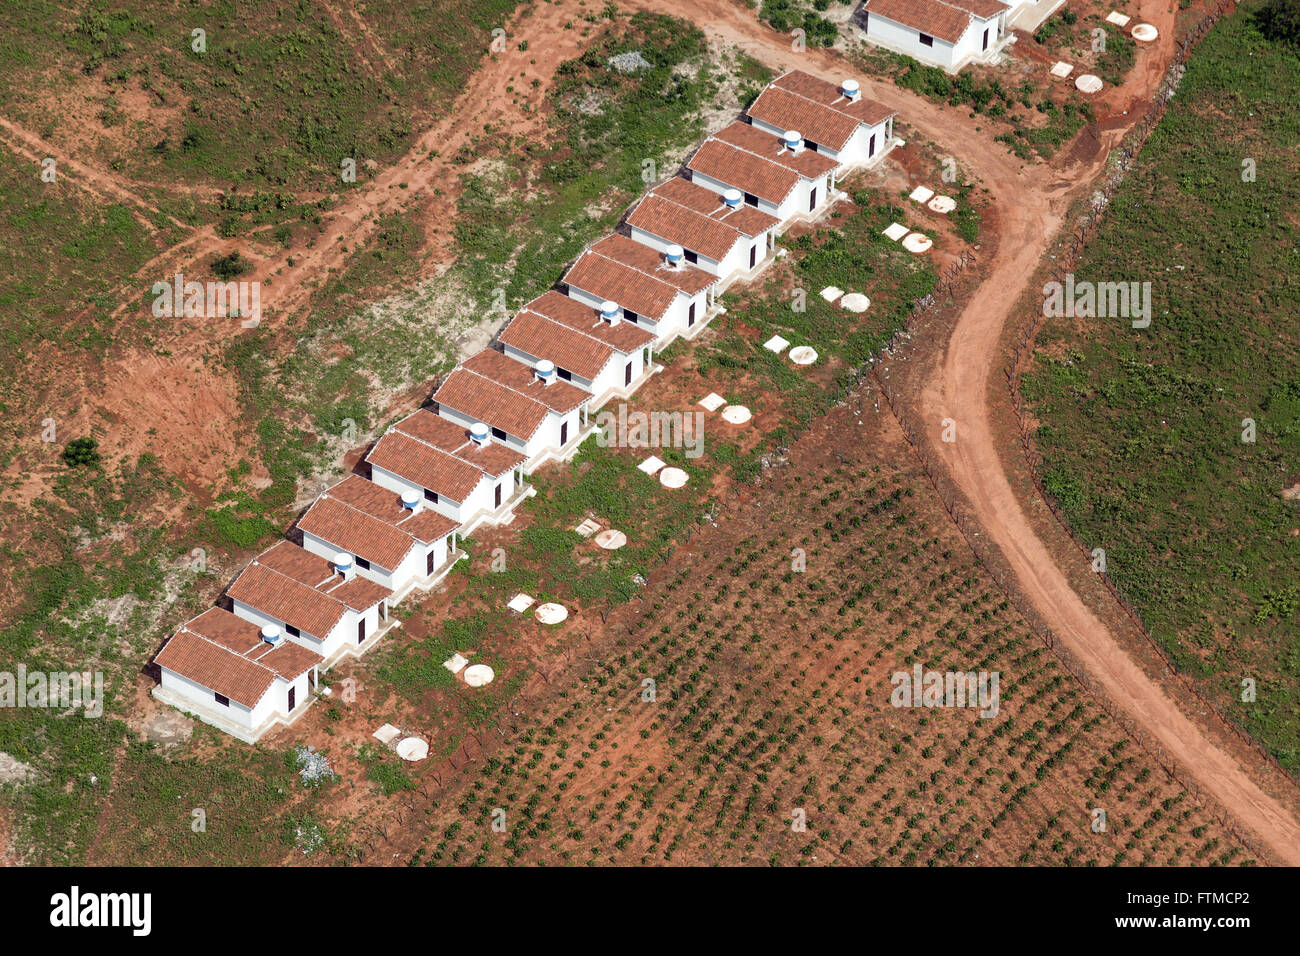 Aerial view of public housing - Stock Image